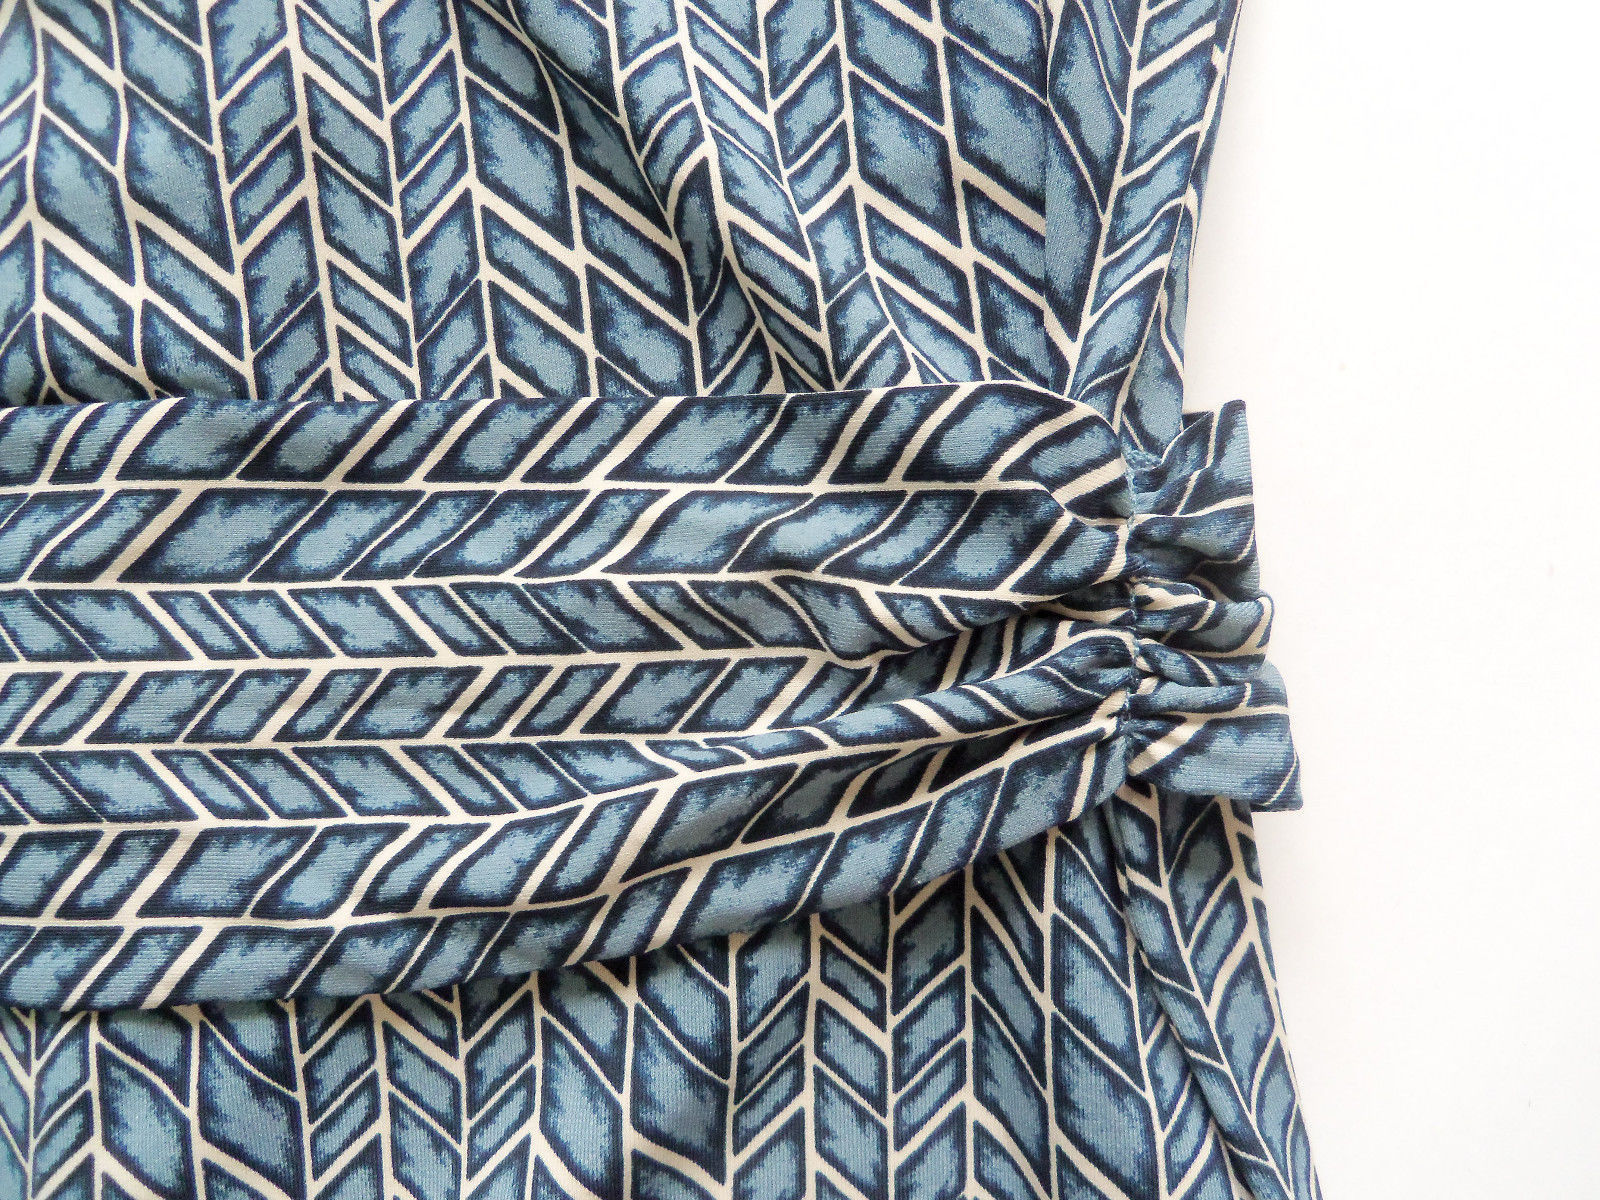 BCBG MAXAZRIA Polyester Blend Dress Blue Geometric Print, Size M, NWHT